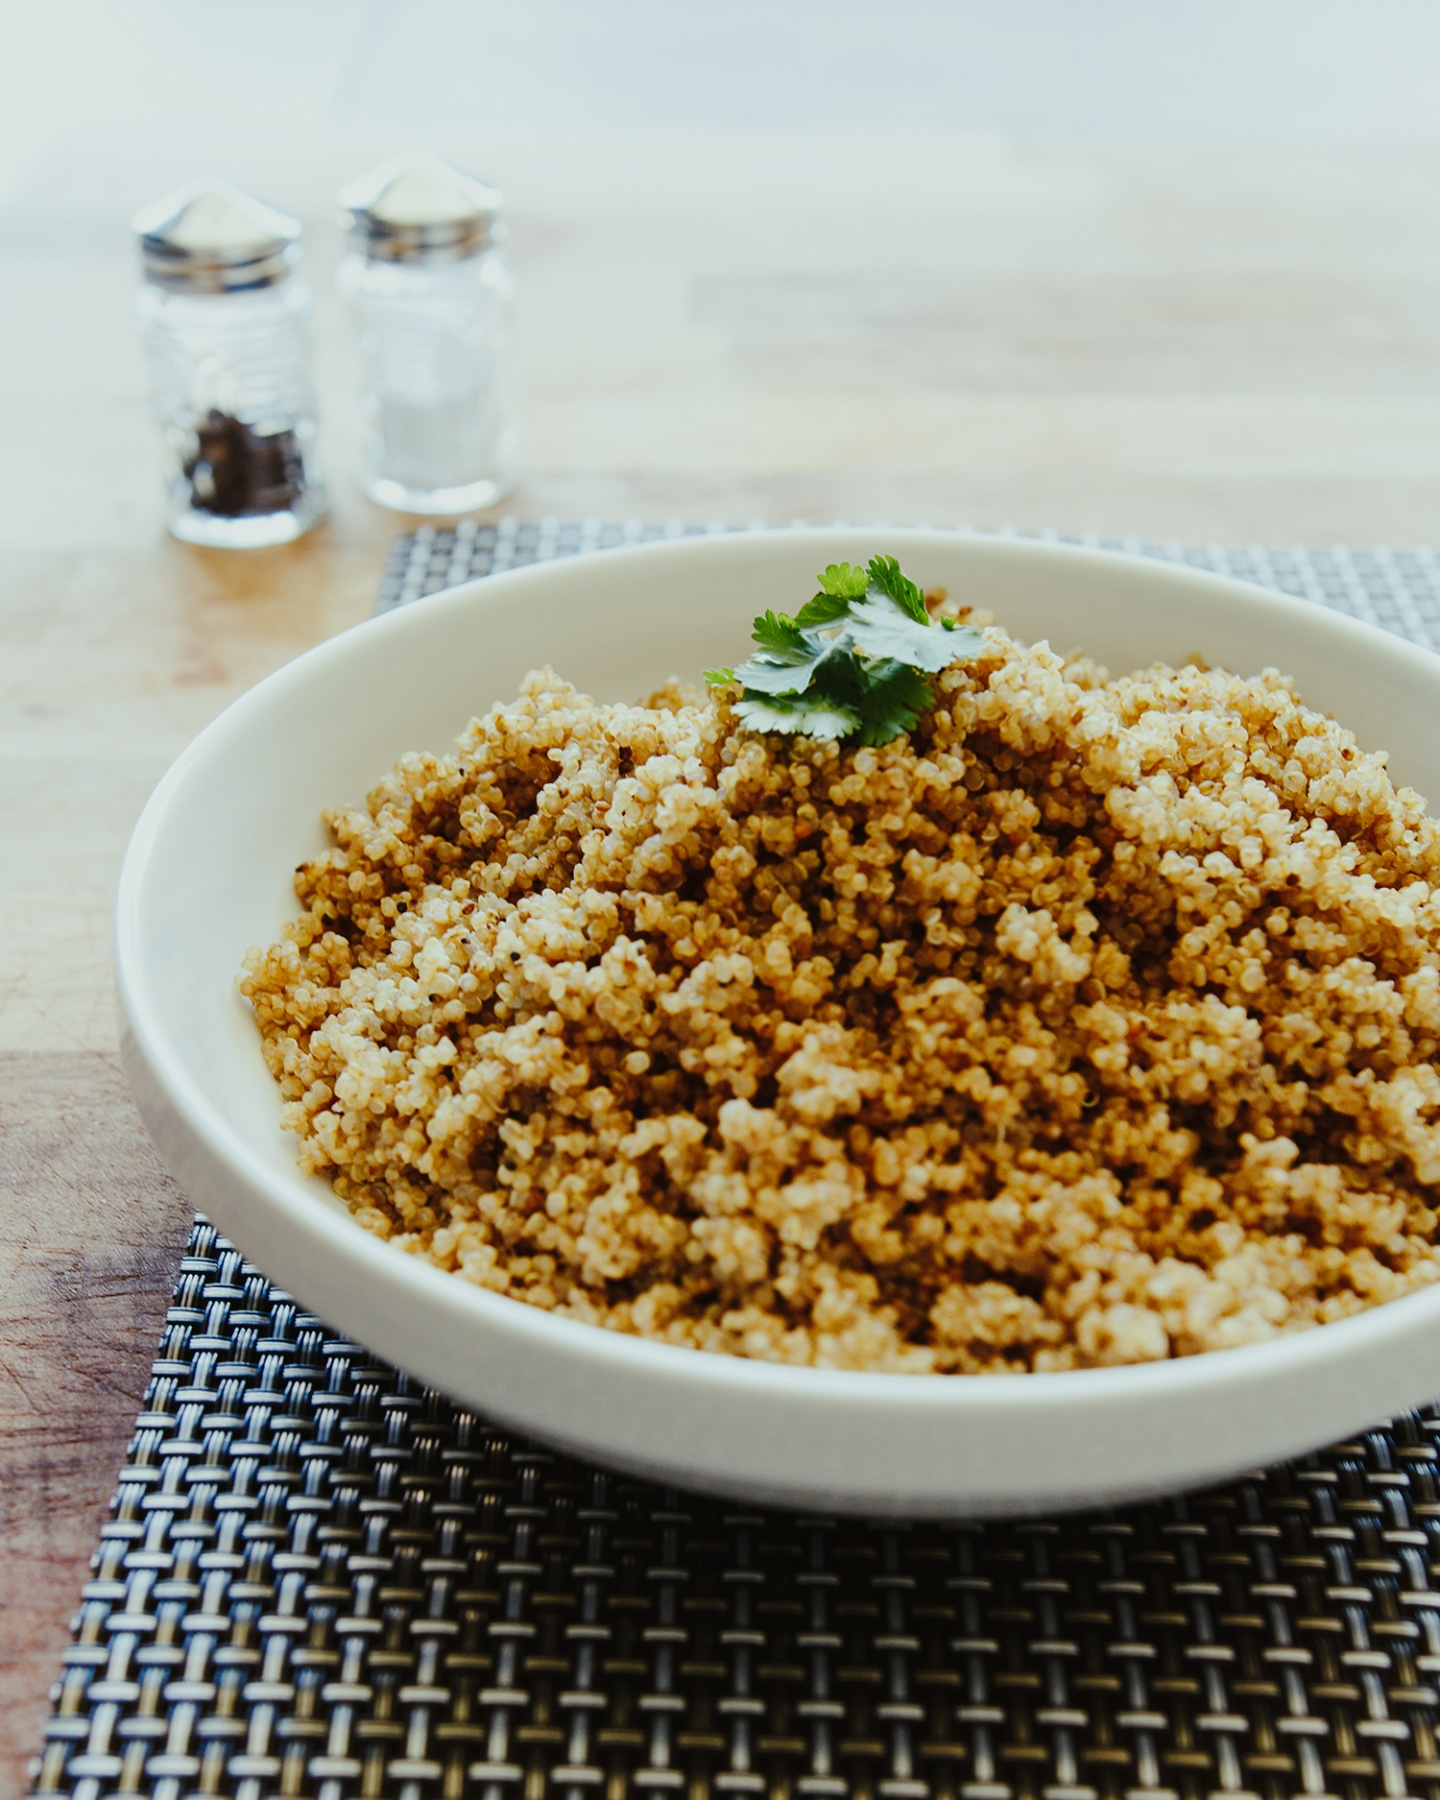 Cooked quinoa in a white bowl